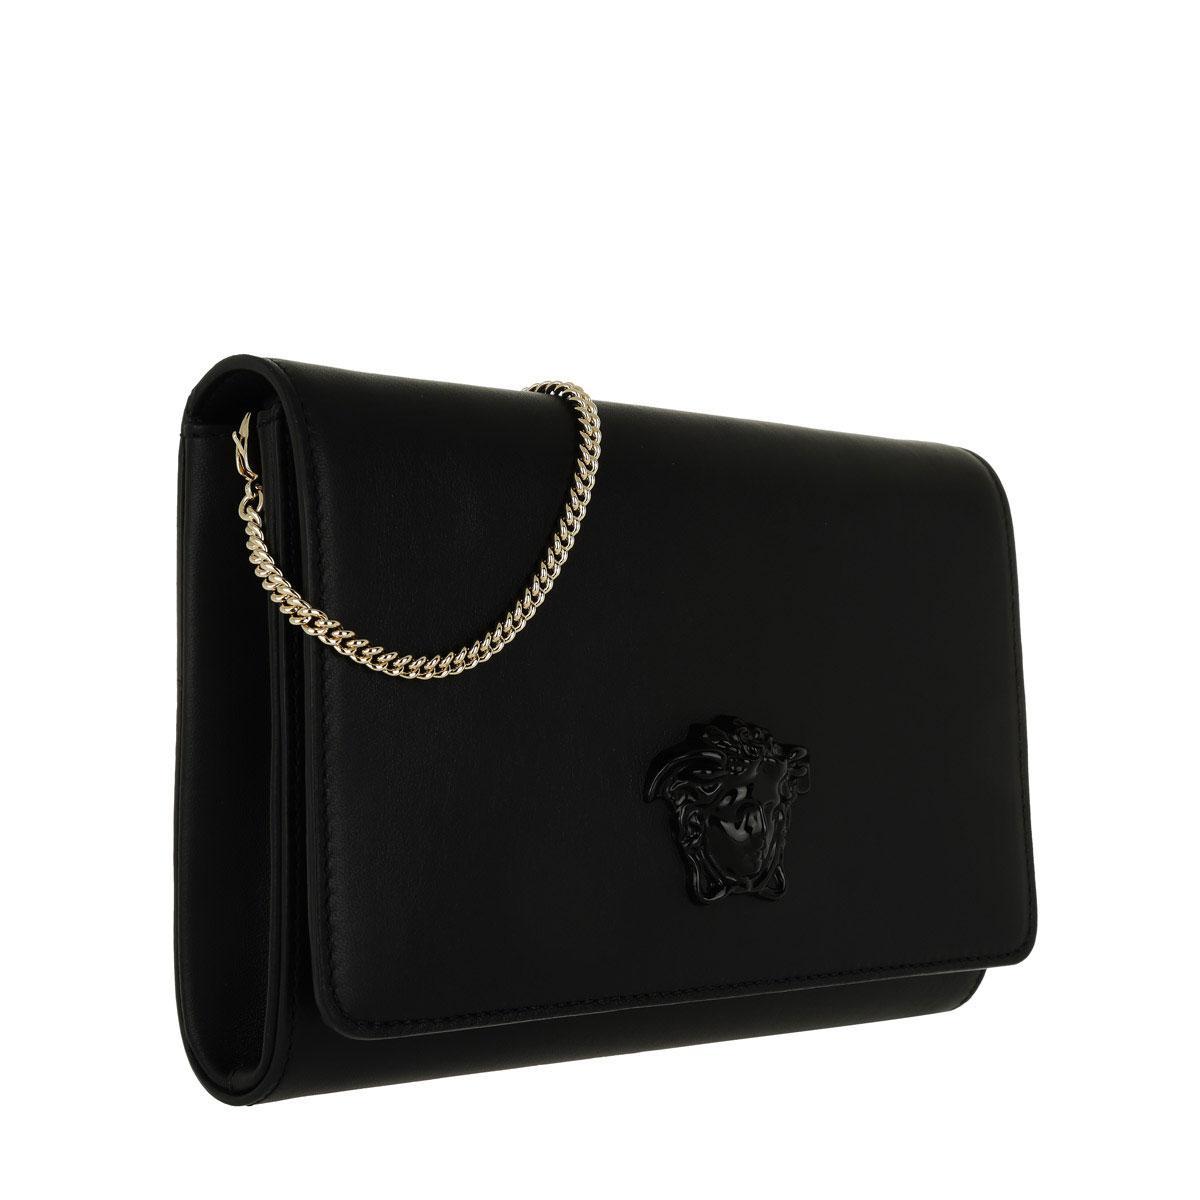 918b0b4b0db3 Versace Clutch Sera Nappa Black light Gold in Black - Lyst